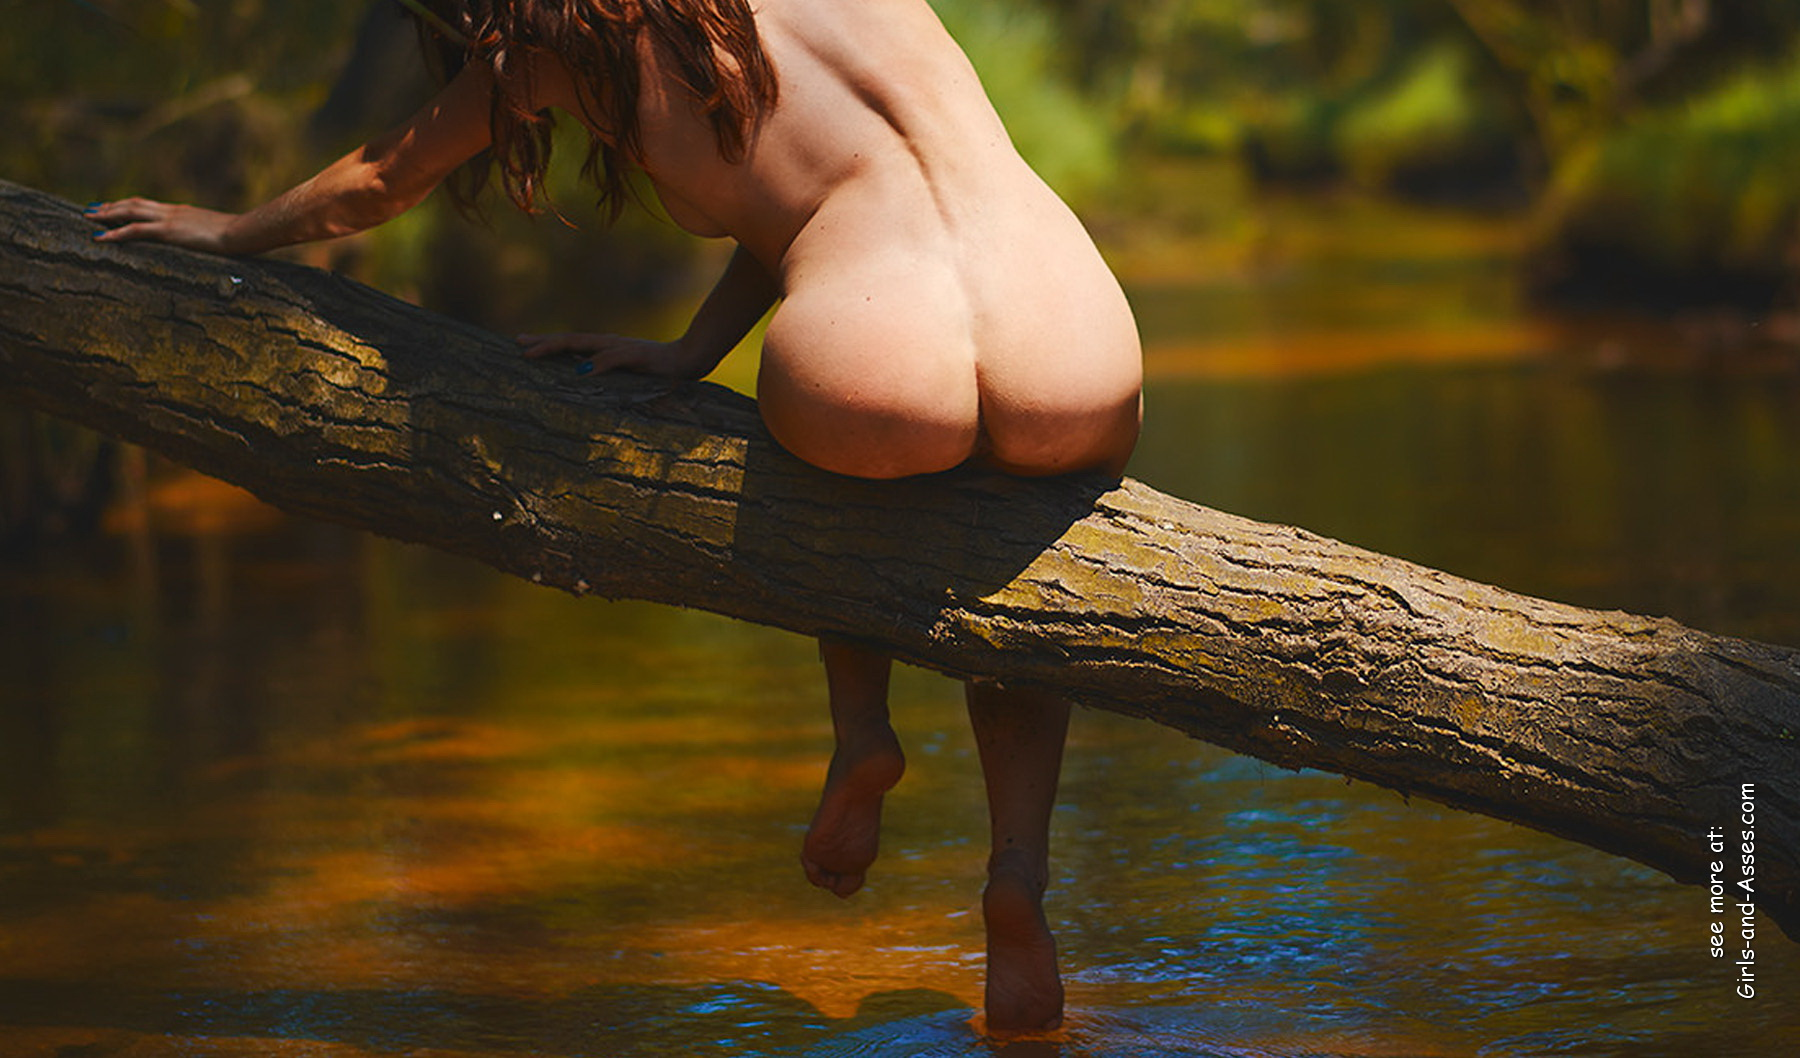 naked girl with big ass in a river picture 00530